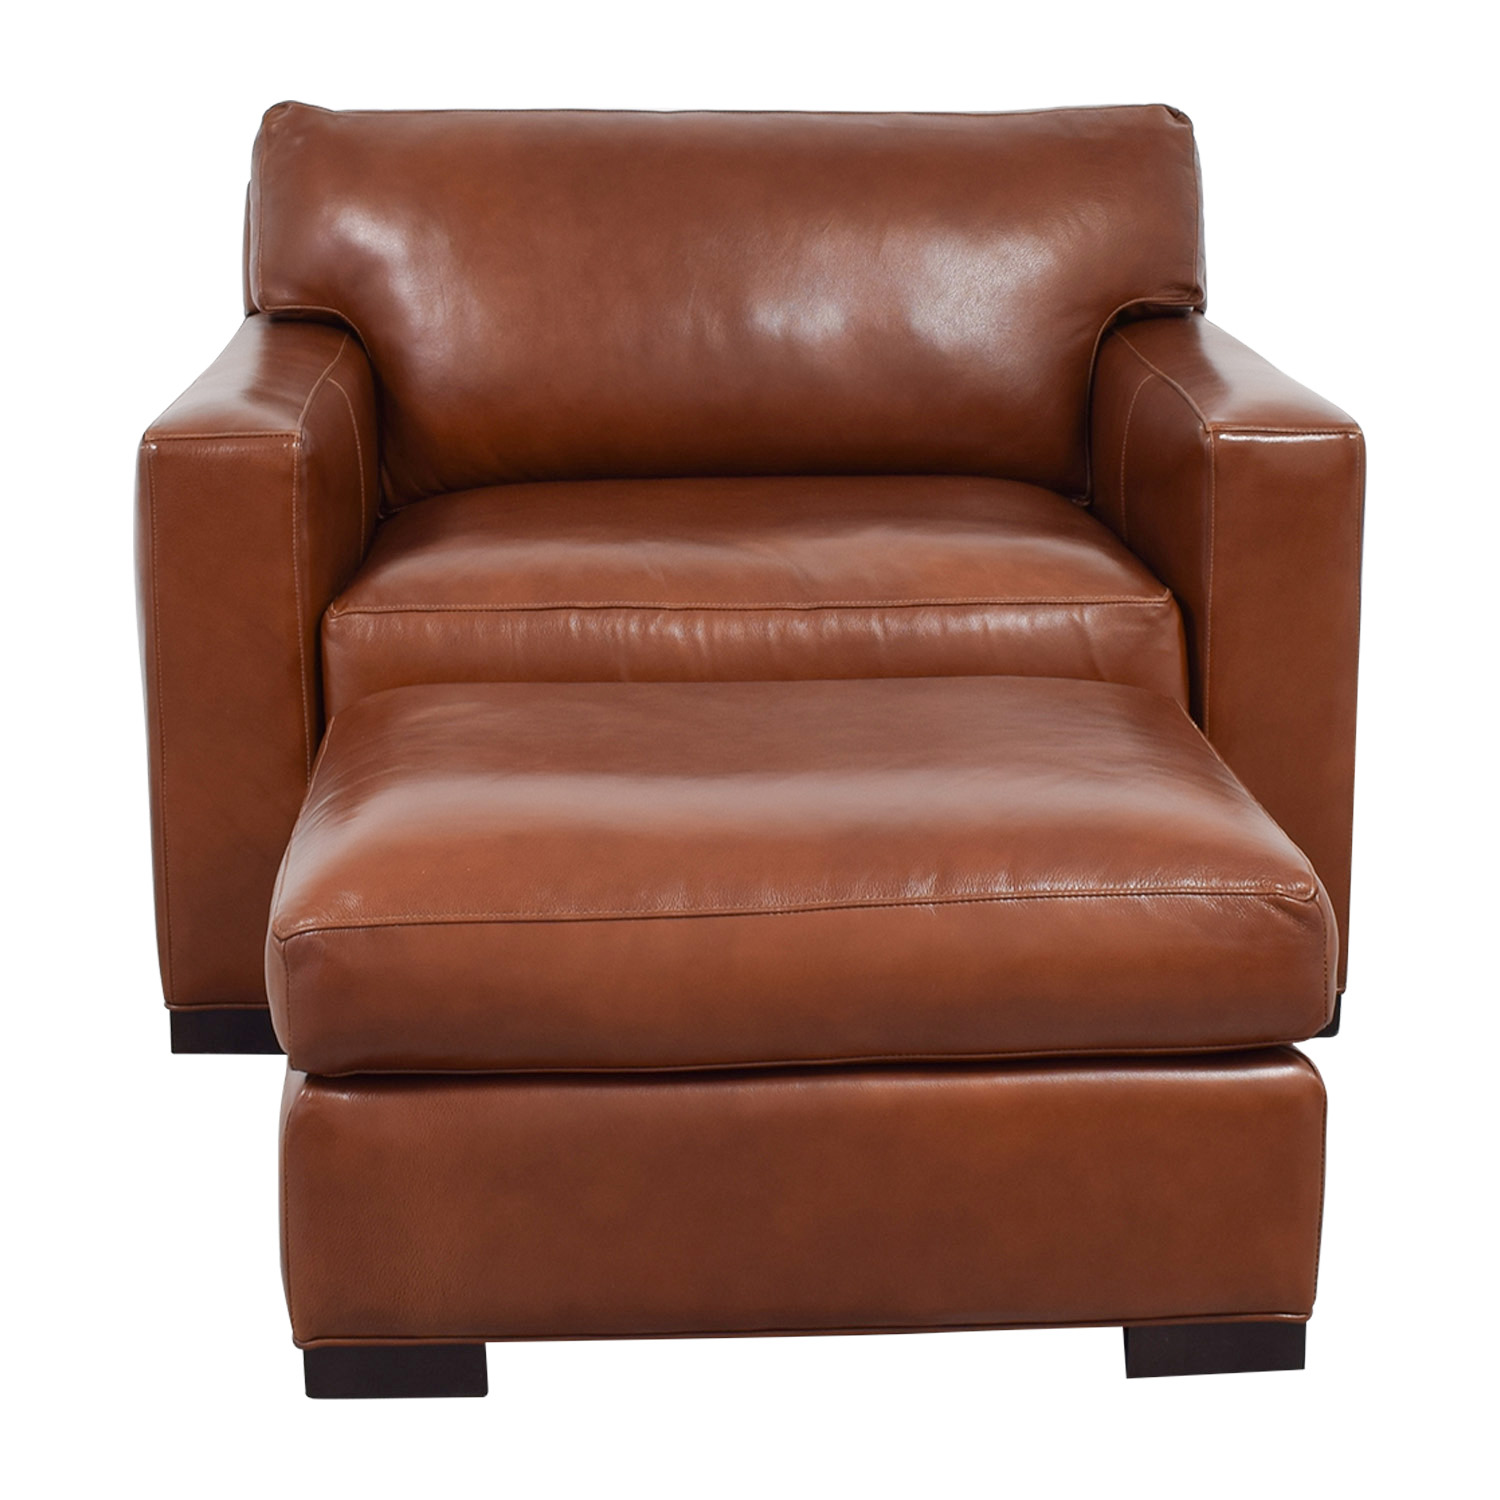 shop Crate & Barrel Axis II Brown Leather Chair and Ottoman Crate & Barrel Sofas